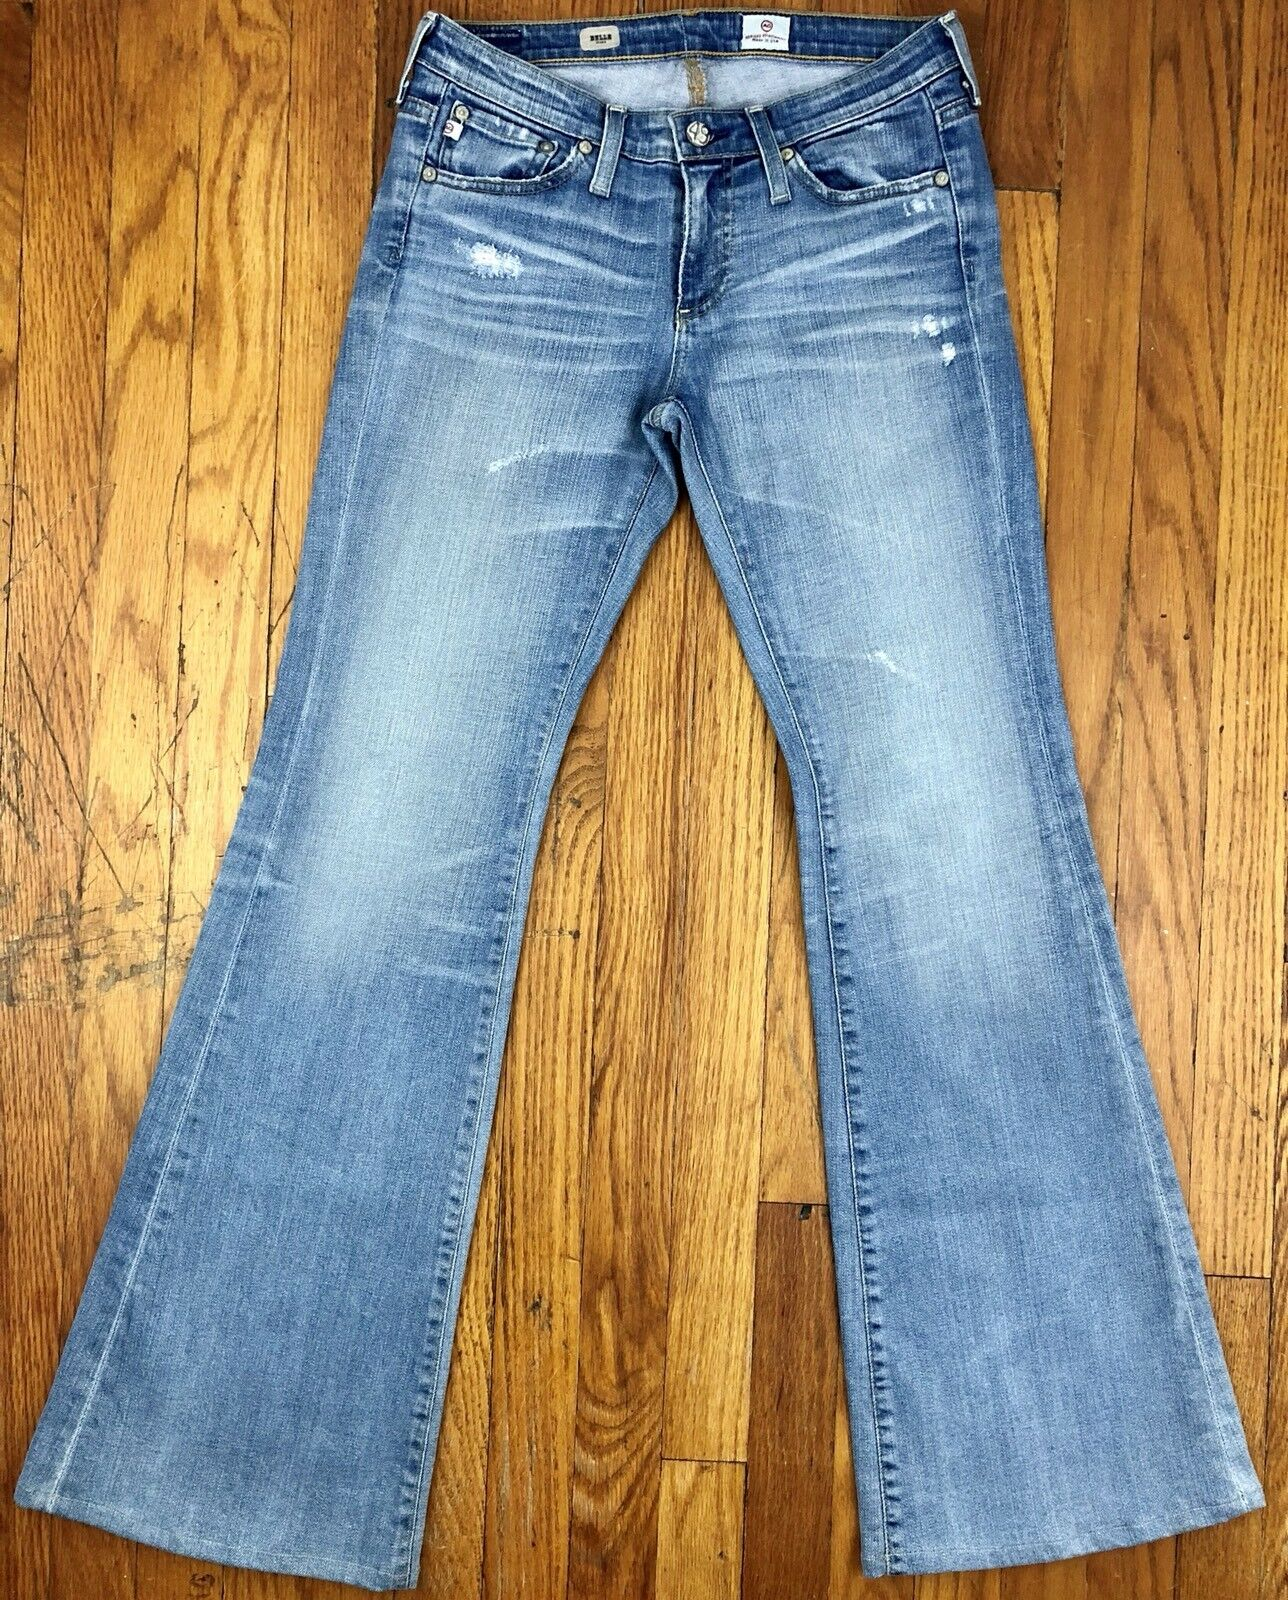 AG Adriano goldschmied Belle Flare Womens Jeans Tag Size 26R Actual 29x31.5